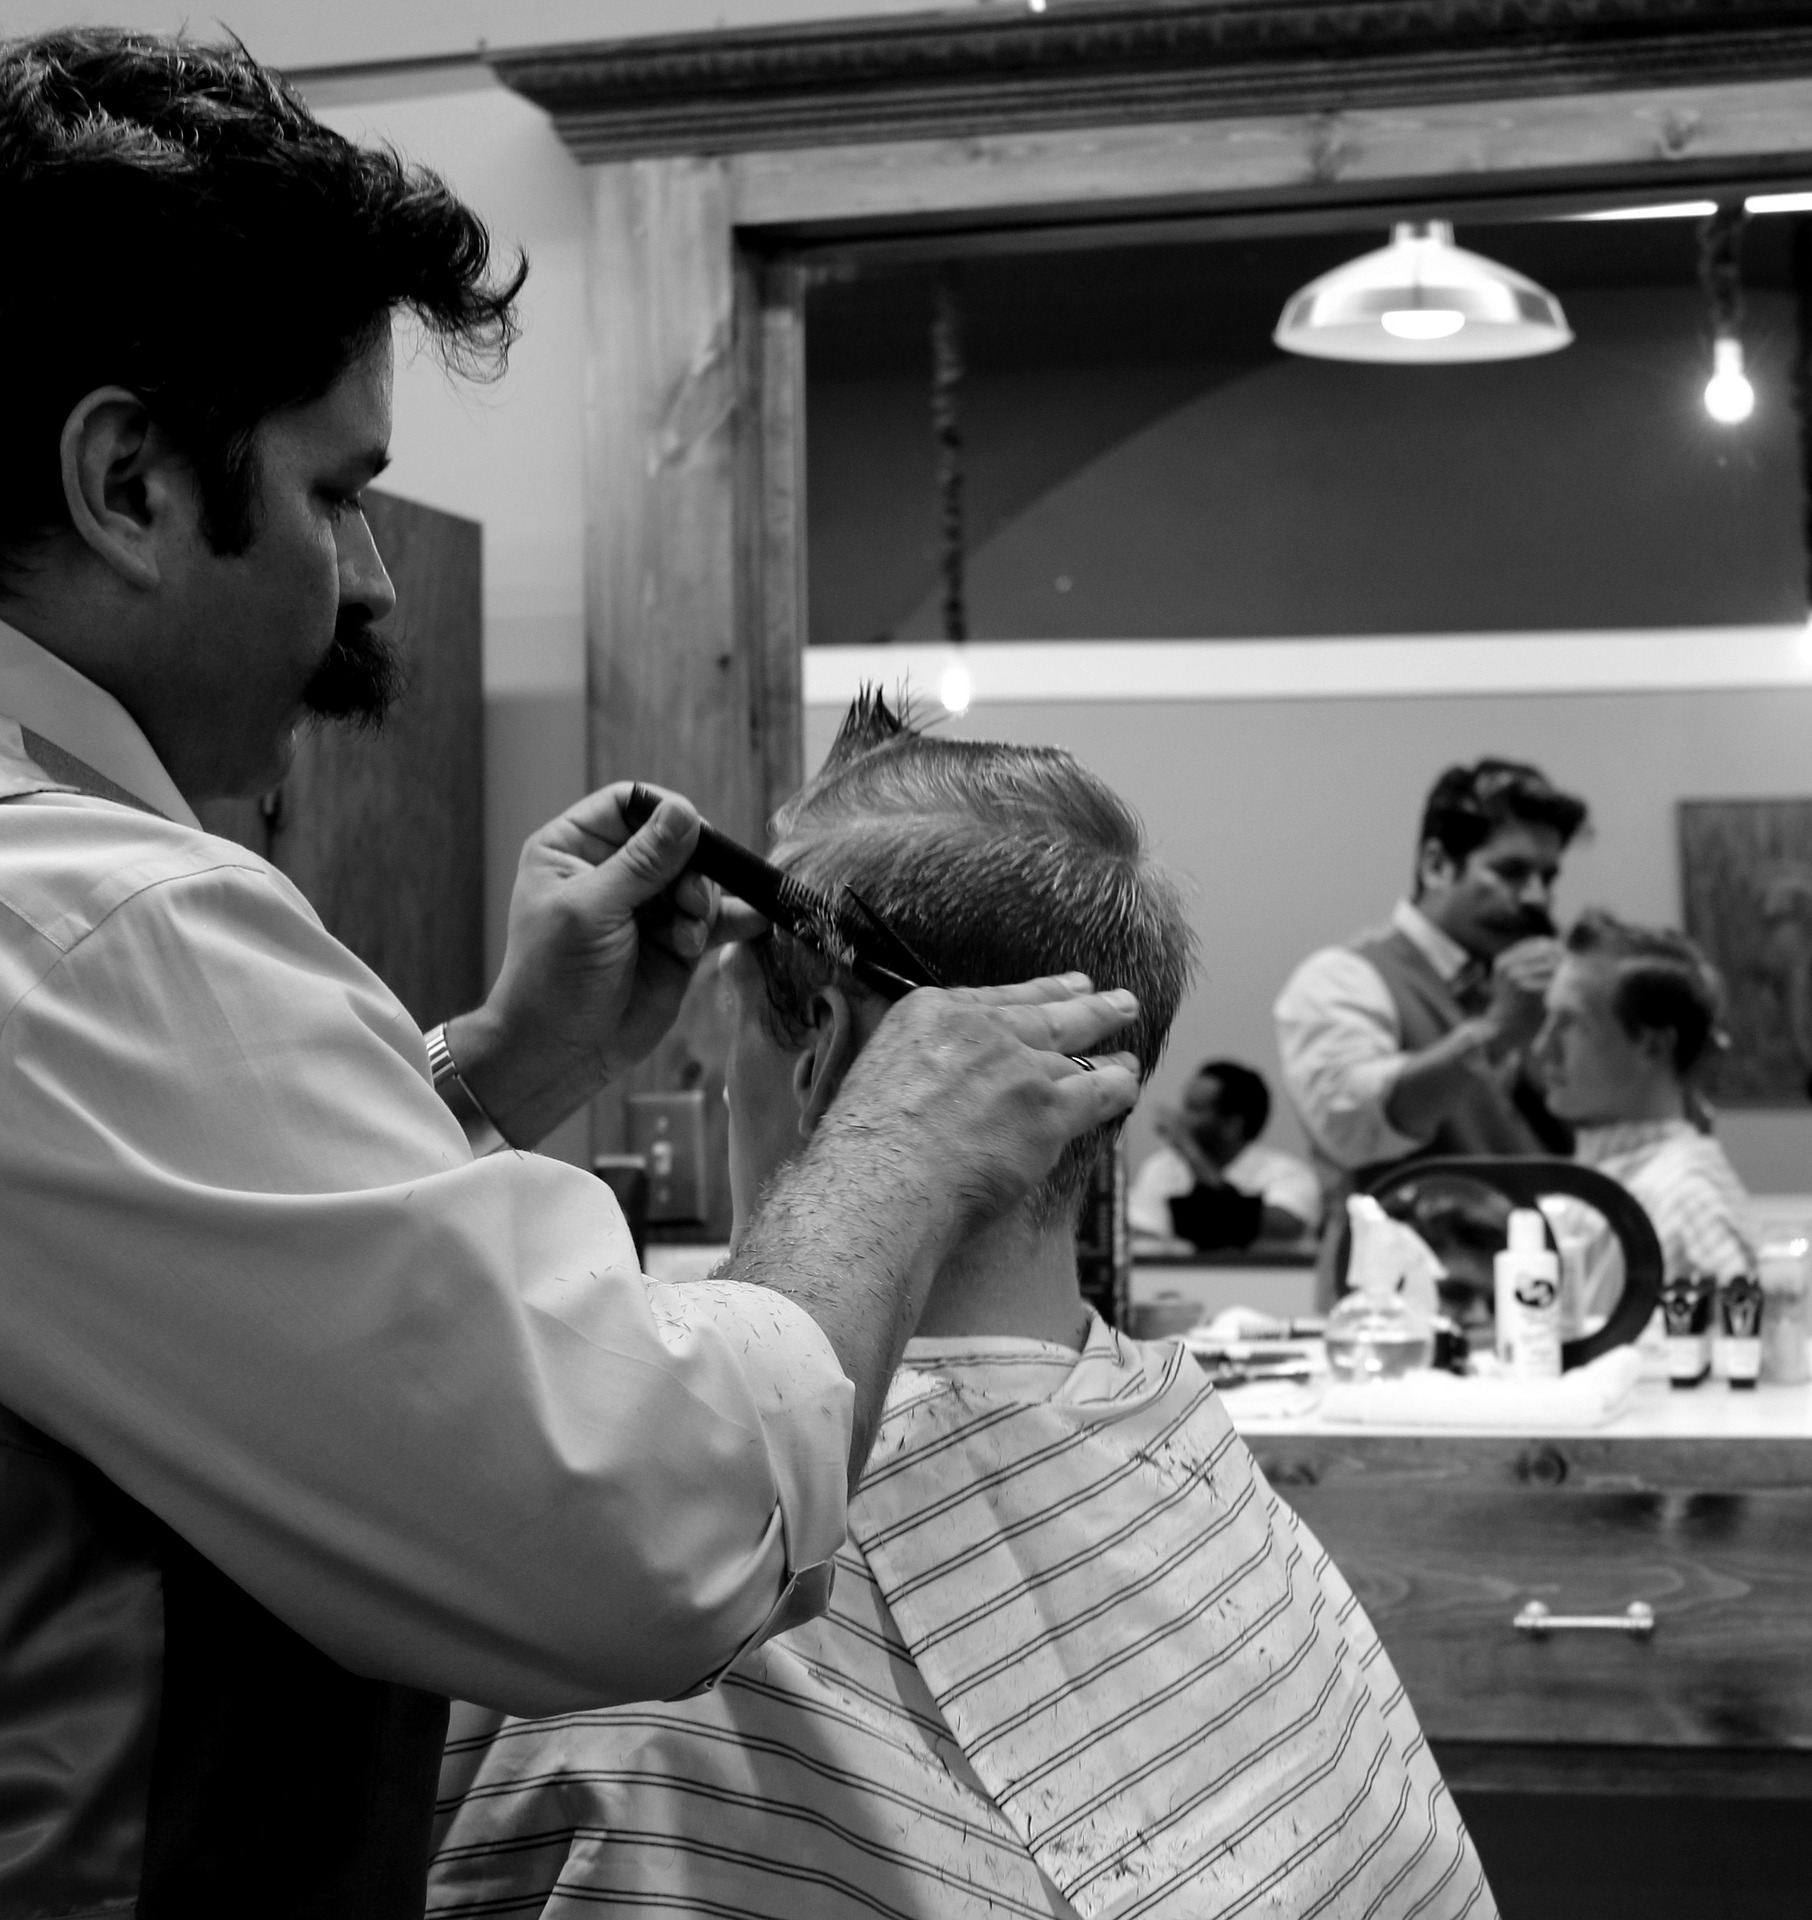 Trendy Hair Salons Pose threats to Barbers